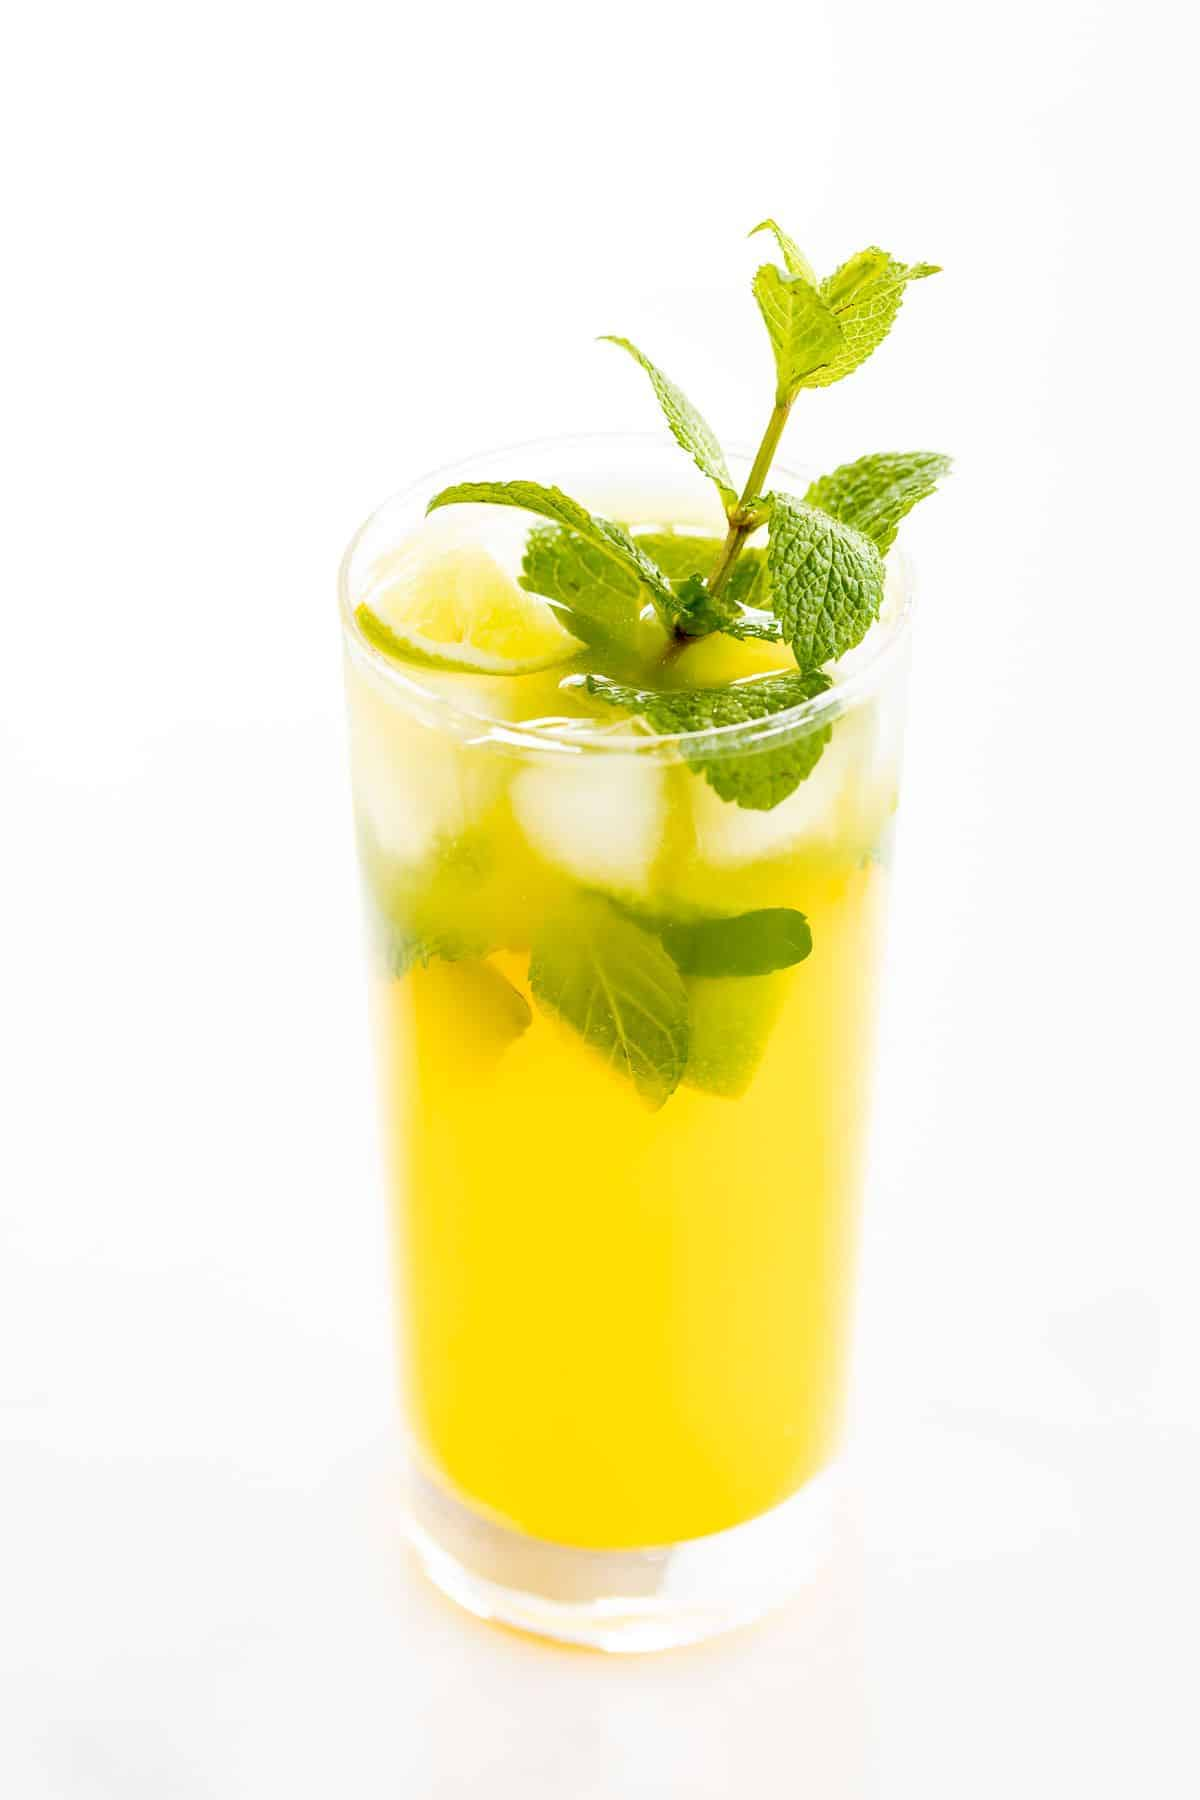 A mango mojito in a clear glass, garnished with a sprig of mint.